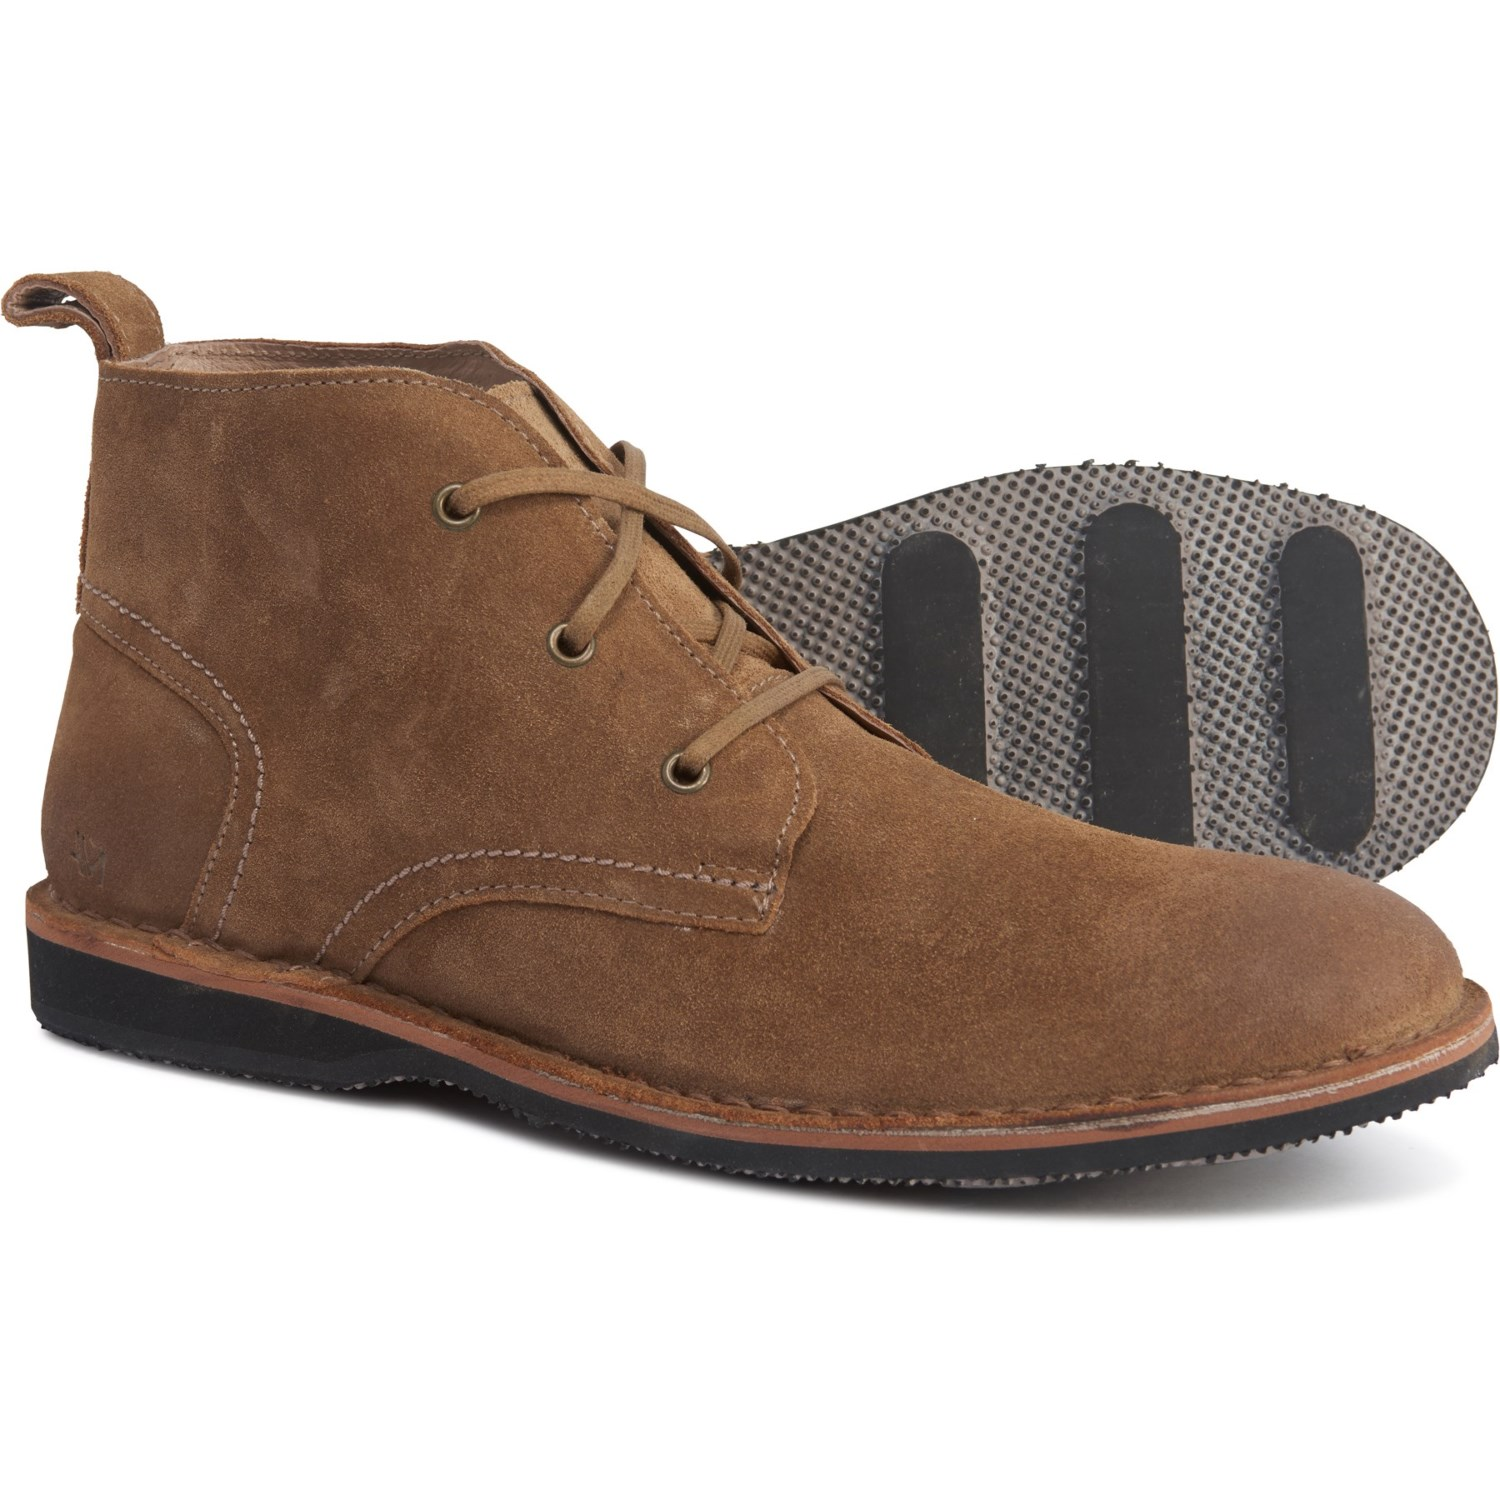 Andrew Marc Dorchester Chukka Boots (For Men) Save 41%